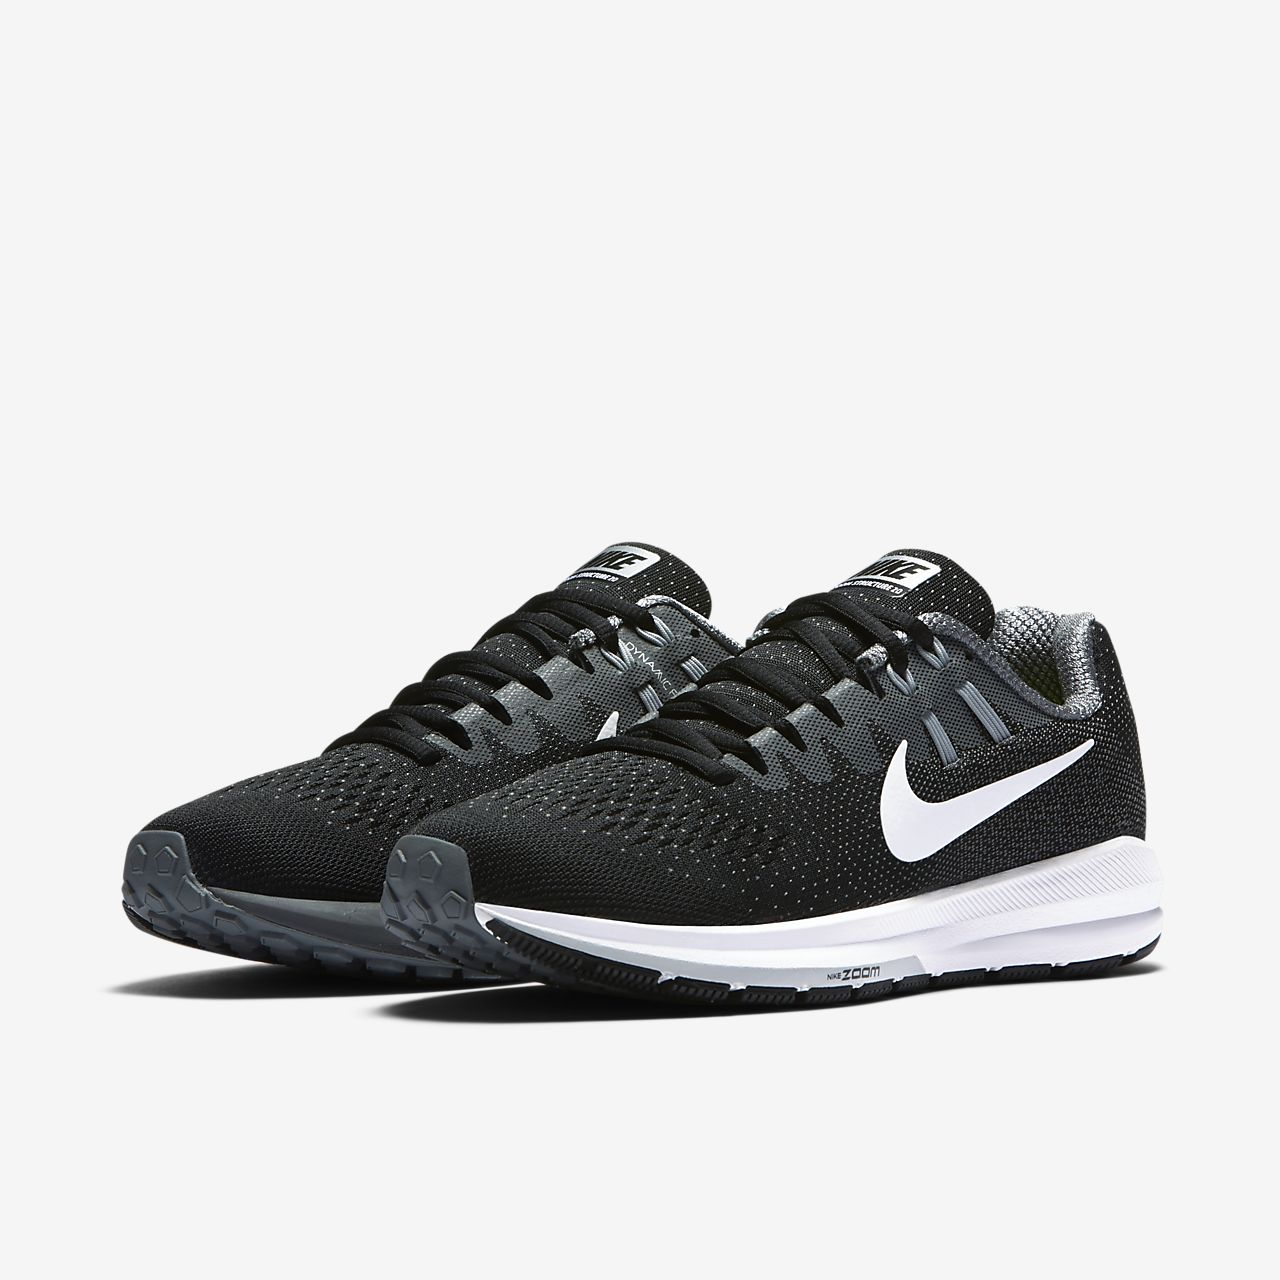 ... Chaussure de running Nike Air Zoom Structure 20 pour Femme